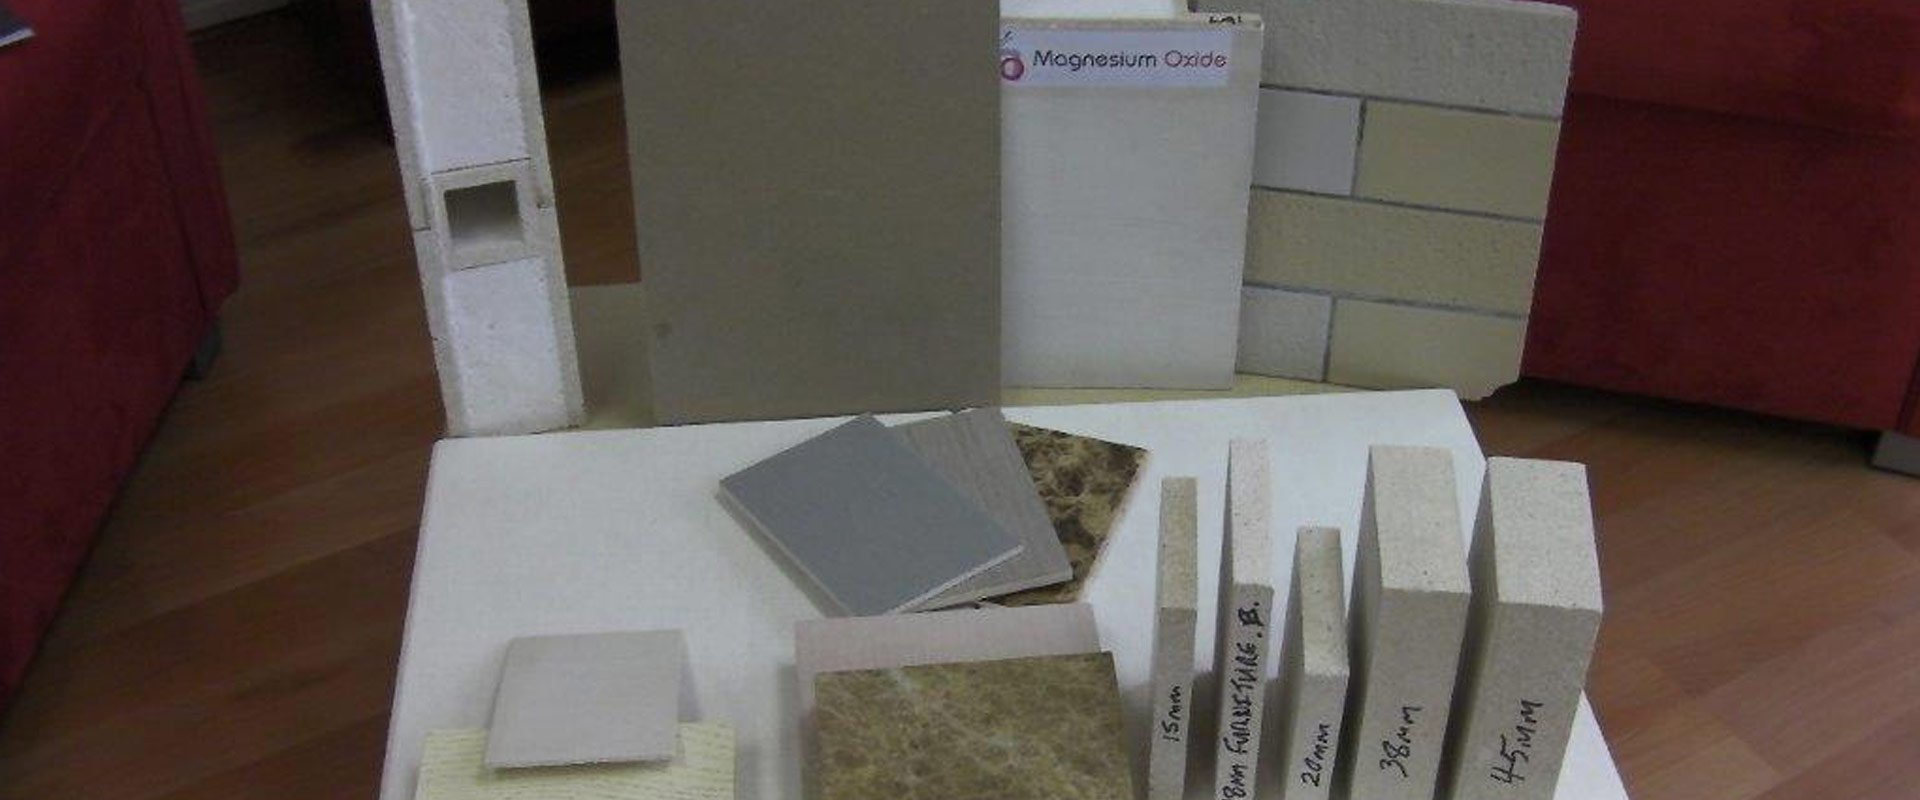 Some of our magnesium oxide boards in Perth